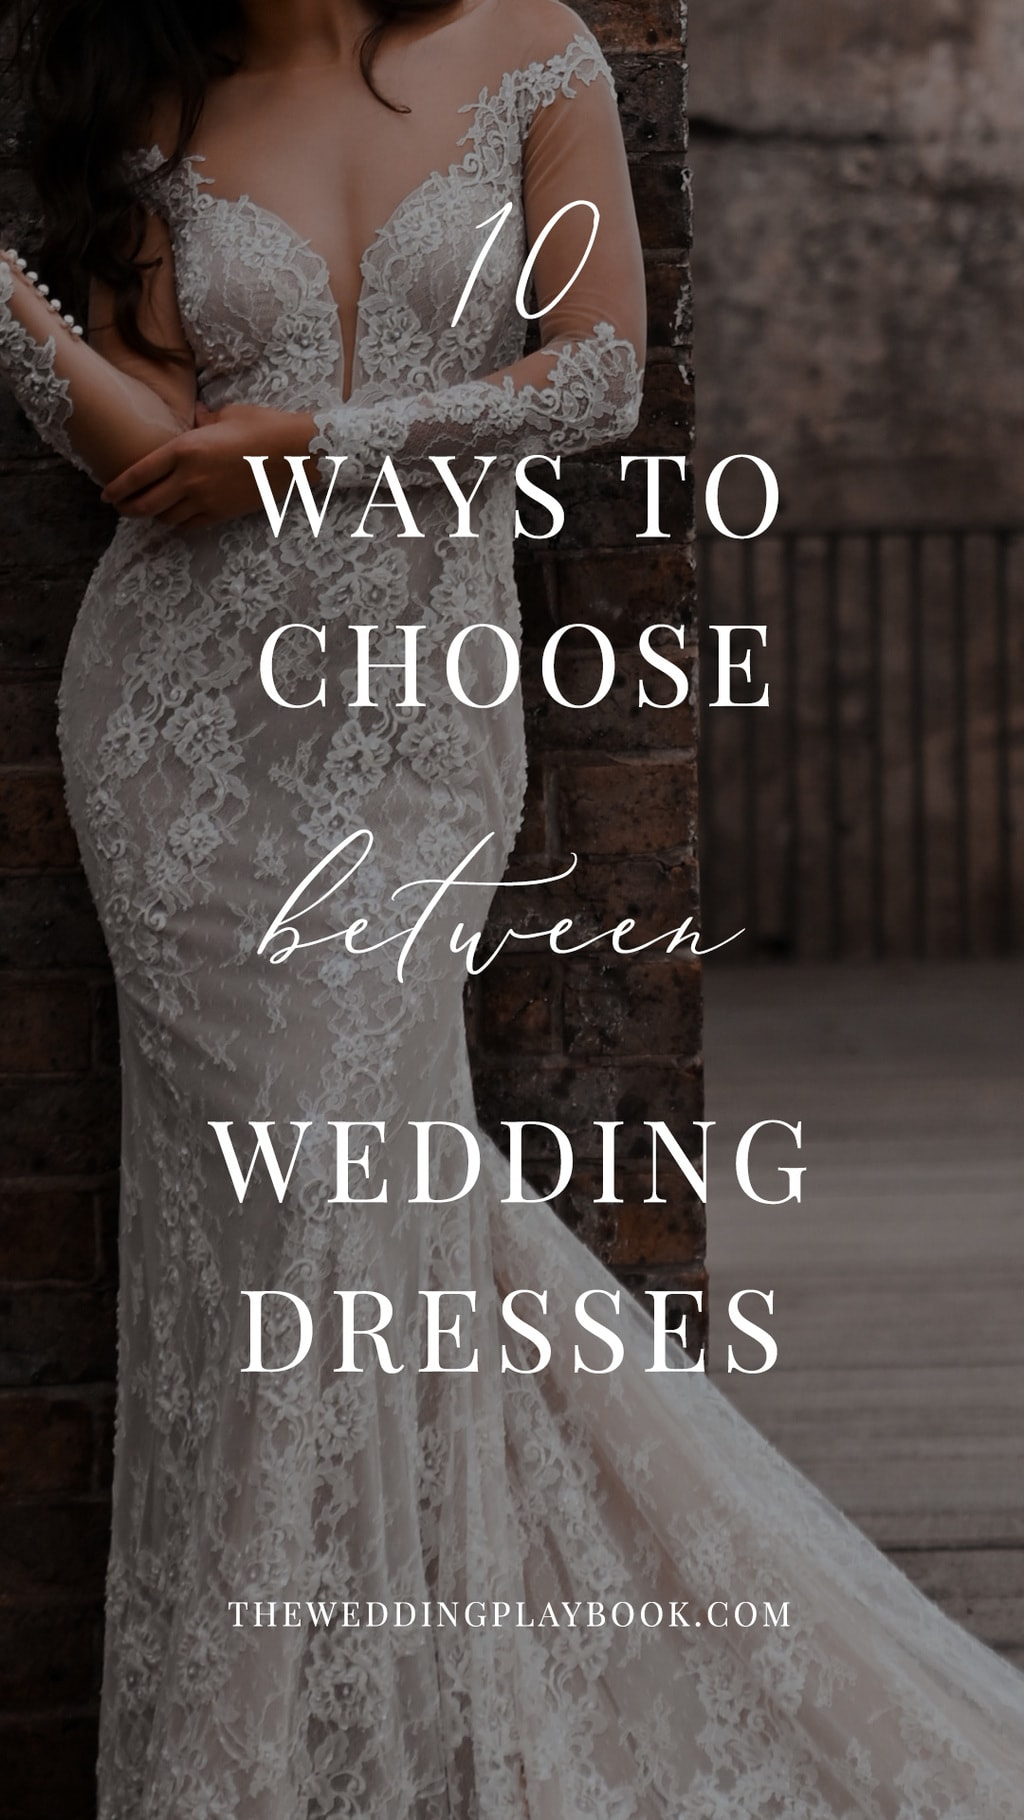 10 Ways to Choose Between Wedding Dresses | Highlight Reel Productions